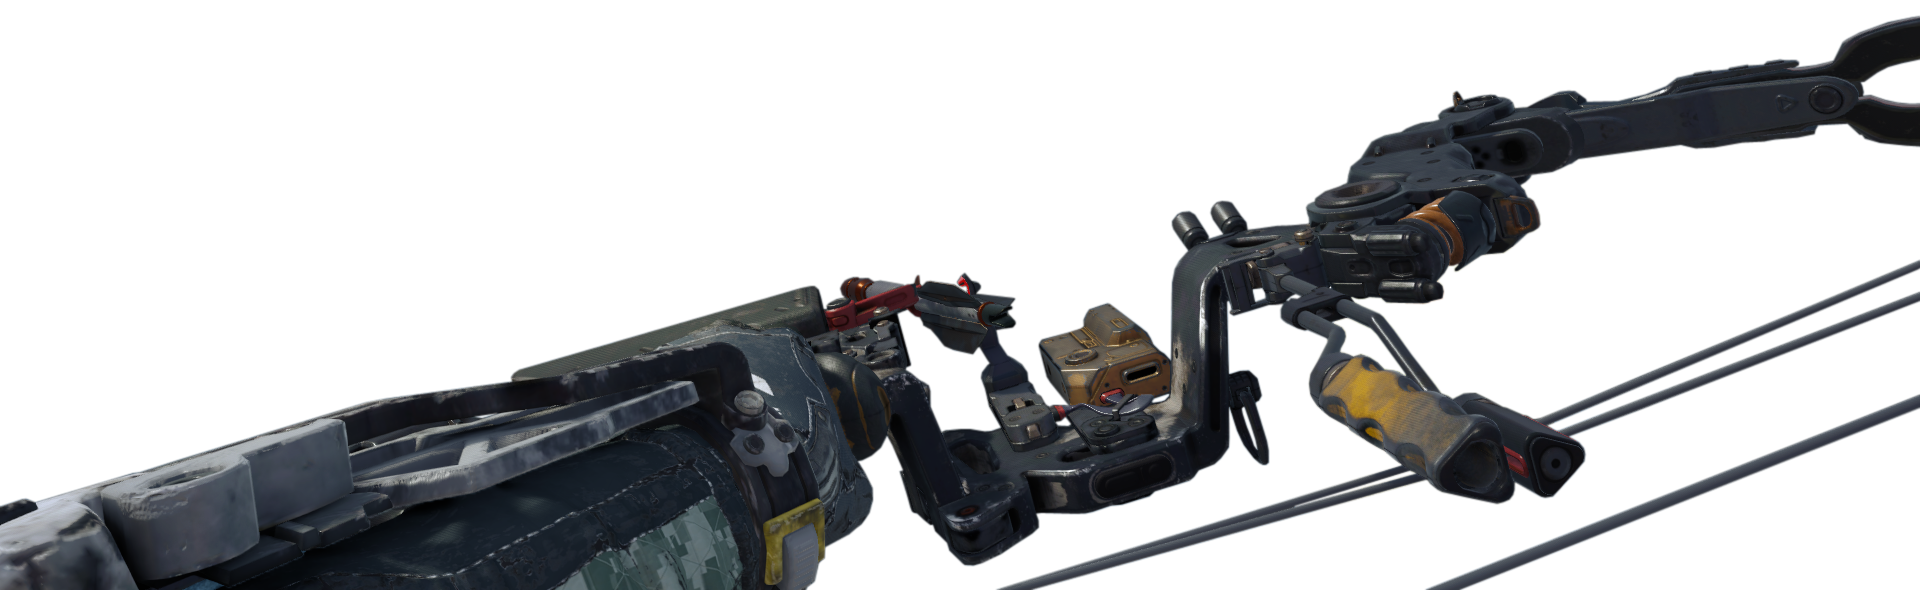 Bo3 sparrow png. Image reload bo call